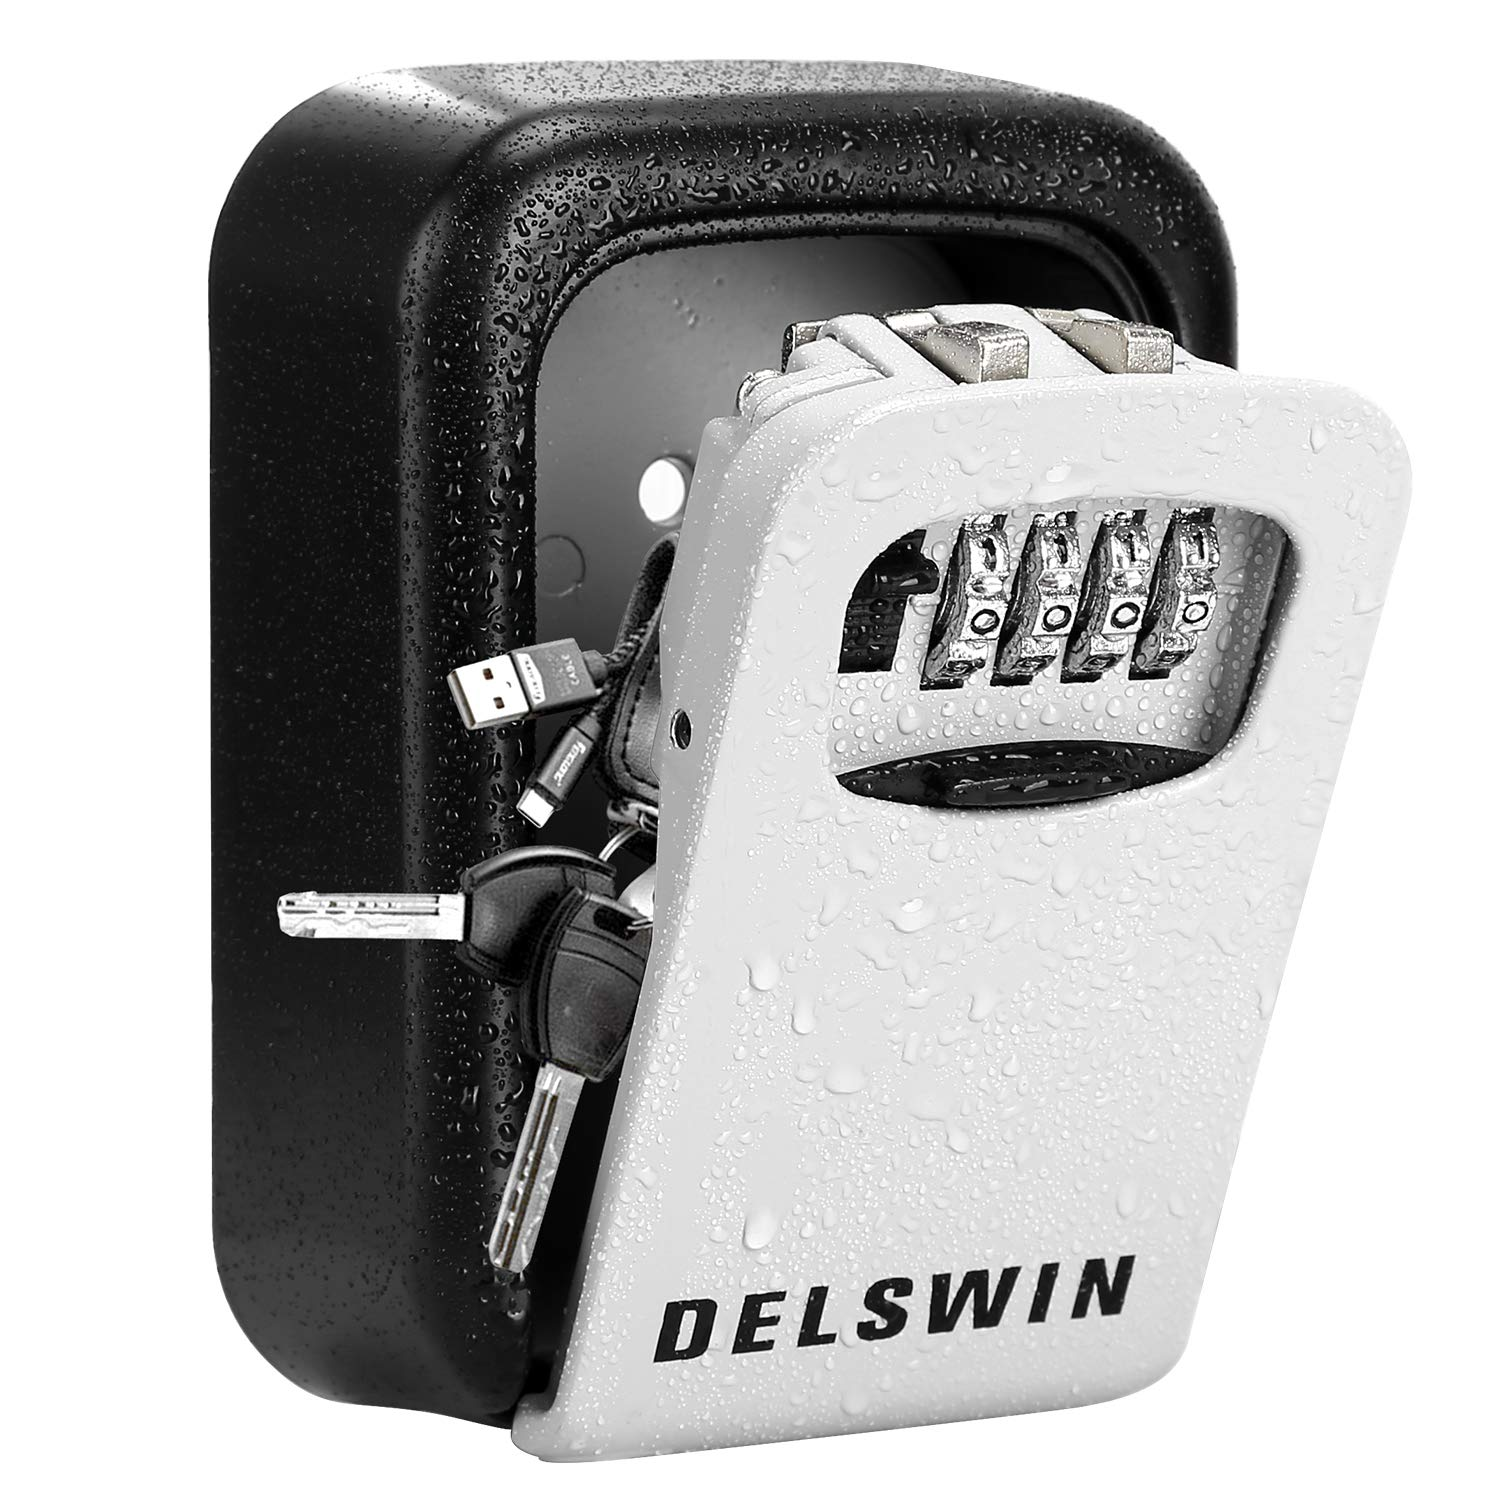 Wall Mounted Key Lock Box - Weatherproof Key Safe Box with 4-Digit Combination Key Storage Box for Home,Airbnb,Hotel,School,Office by DELSWIN